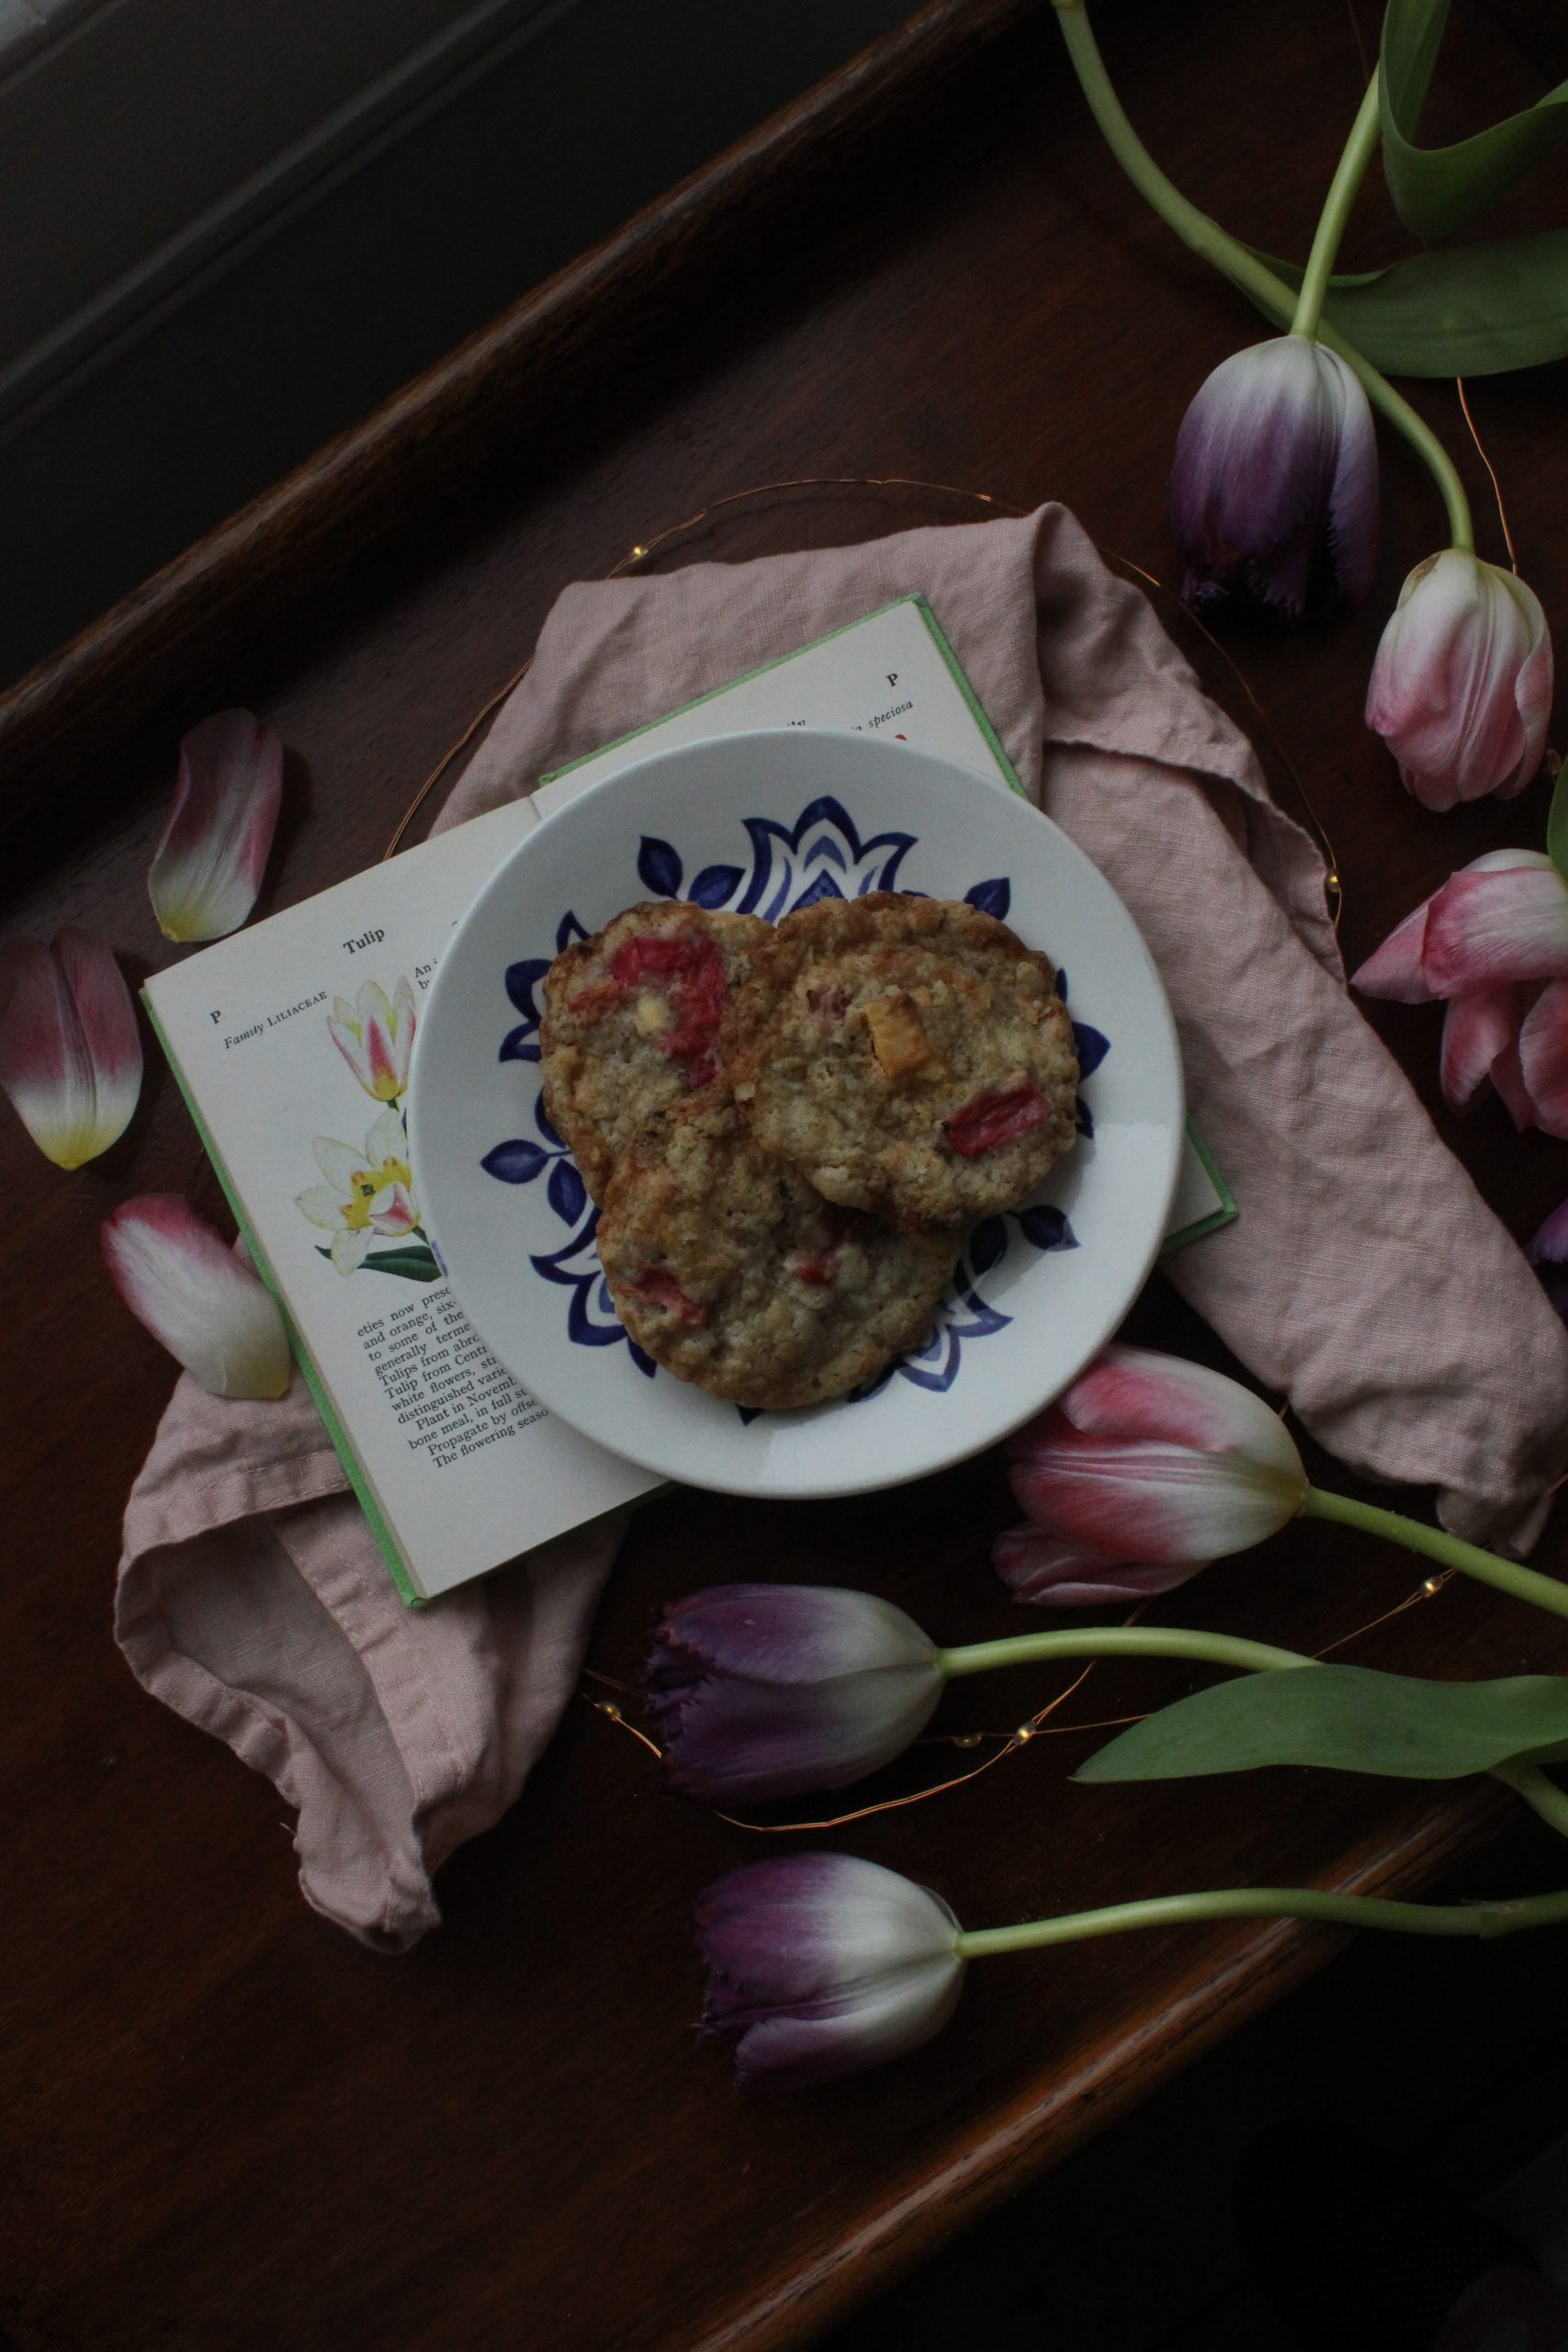 White chocolate, stem ginger and rhubarb cookies